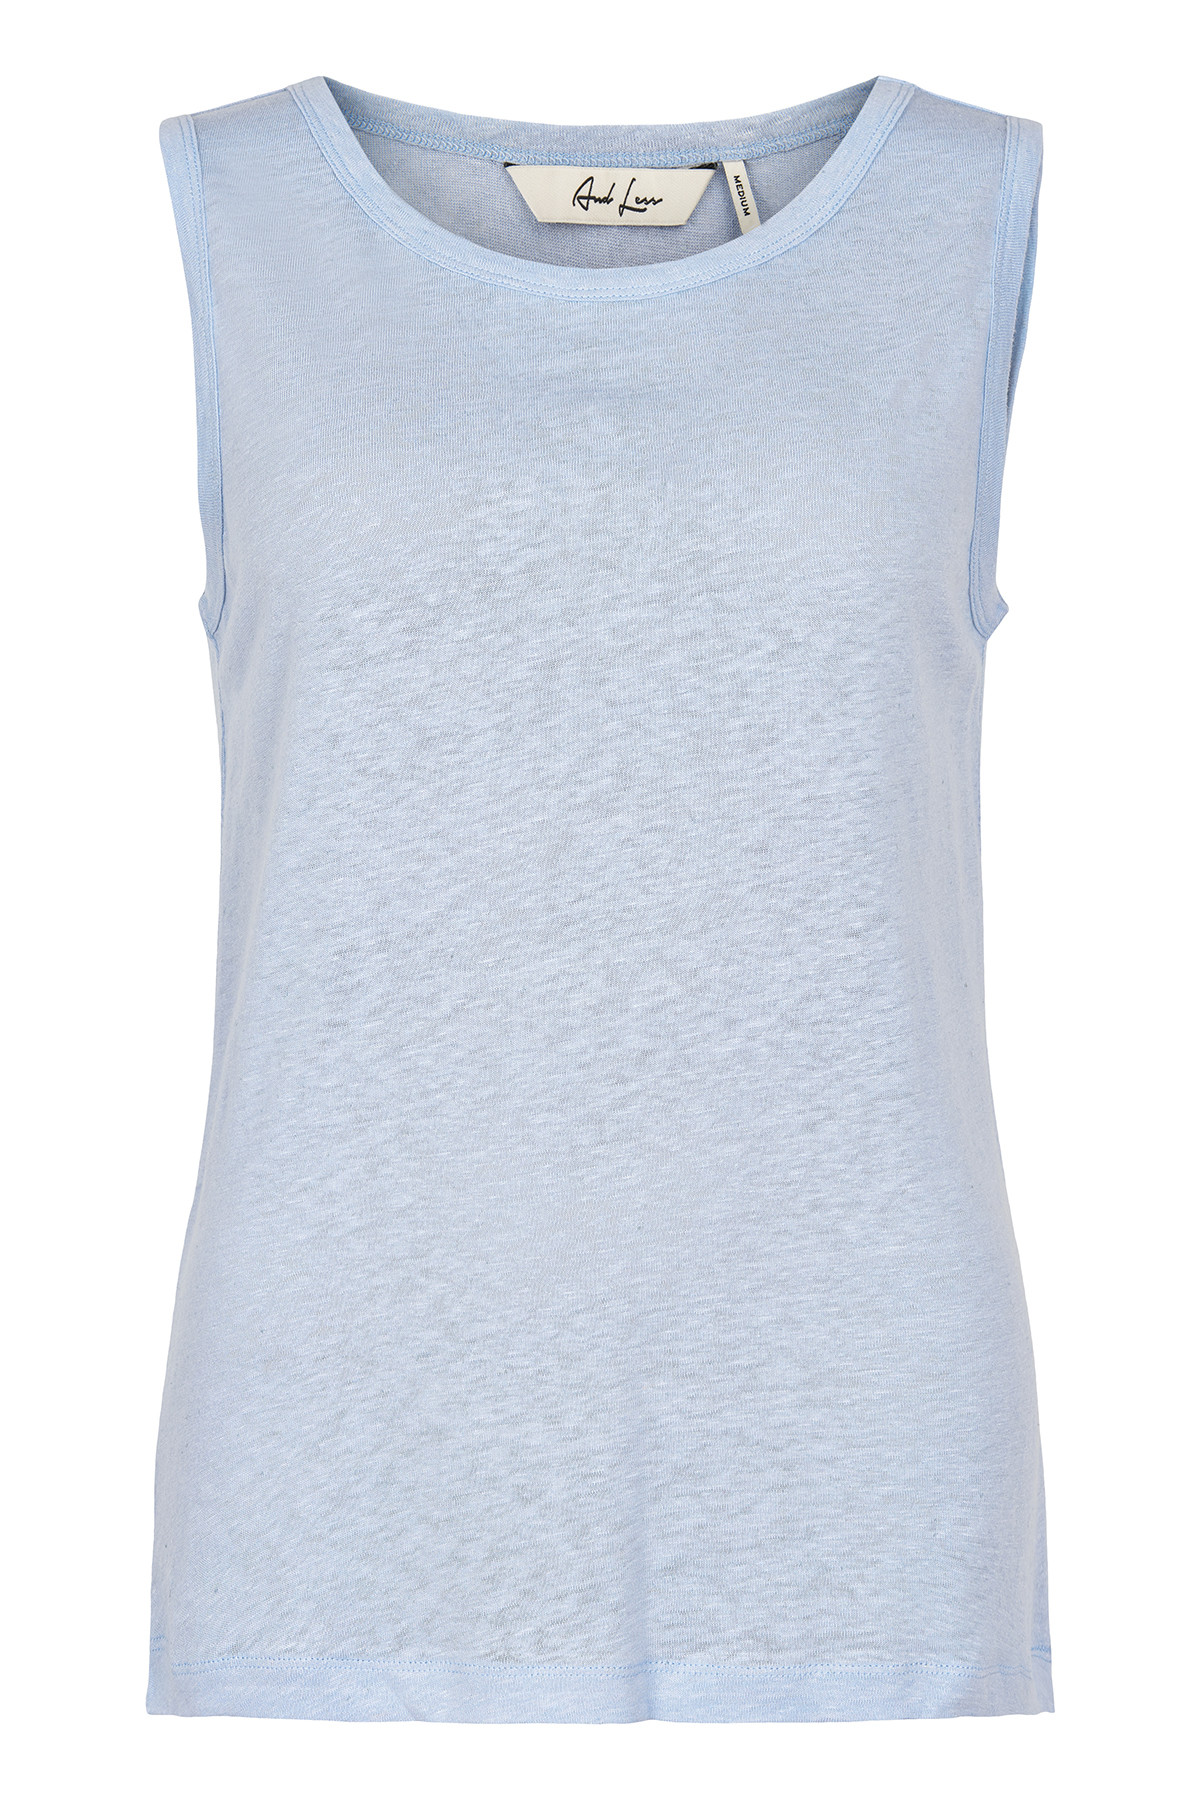 Image of   AND LESS ALBILEA TOP 5220303 3056 (Zen Blue, XS)